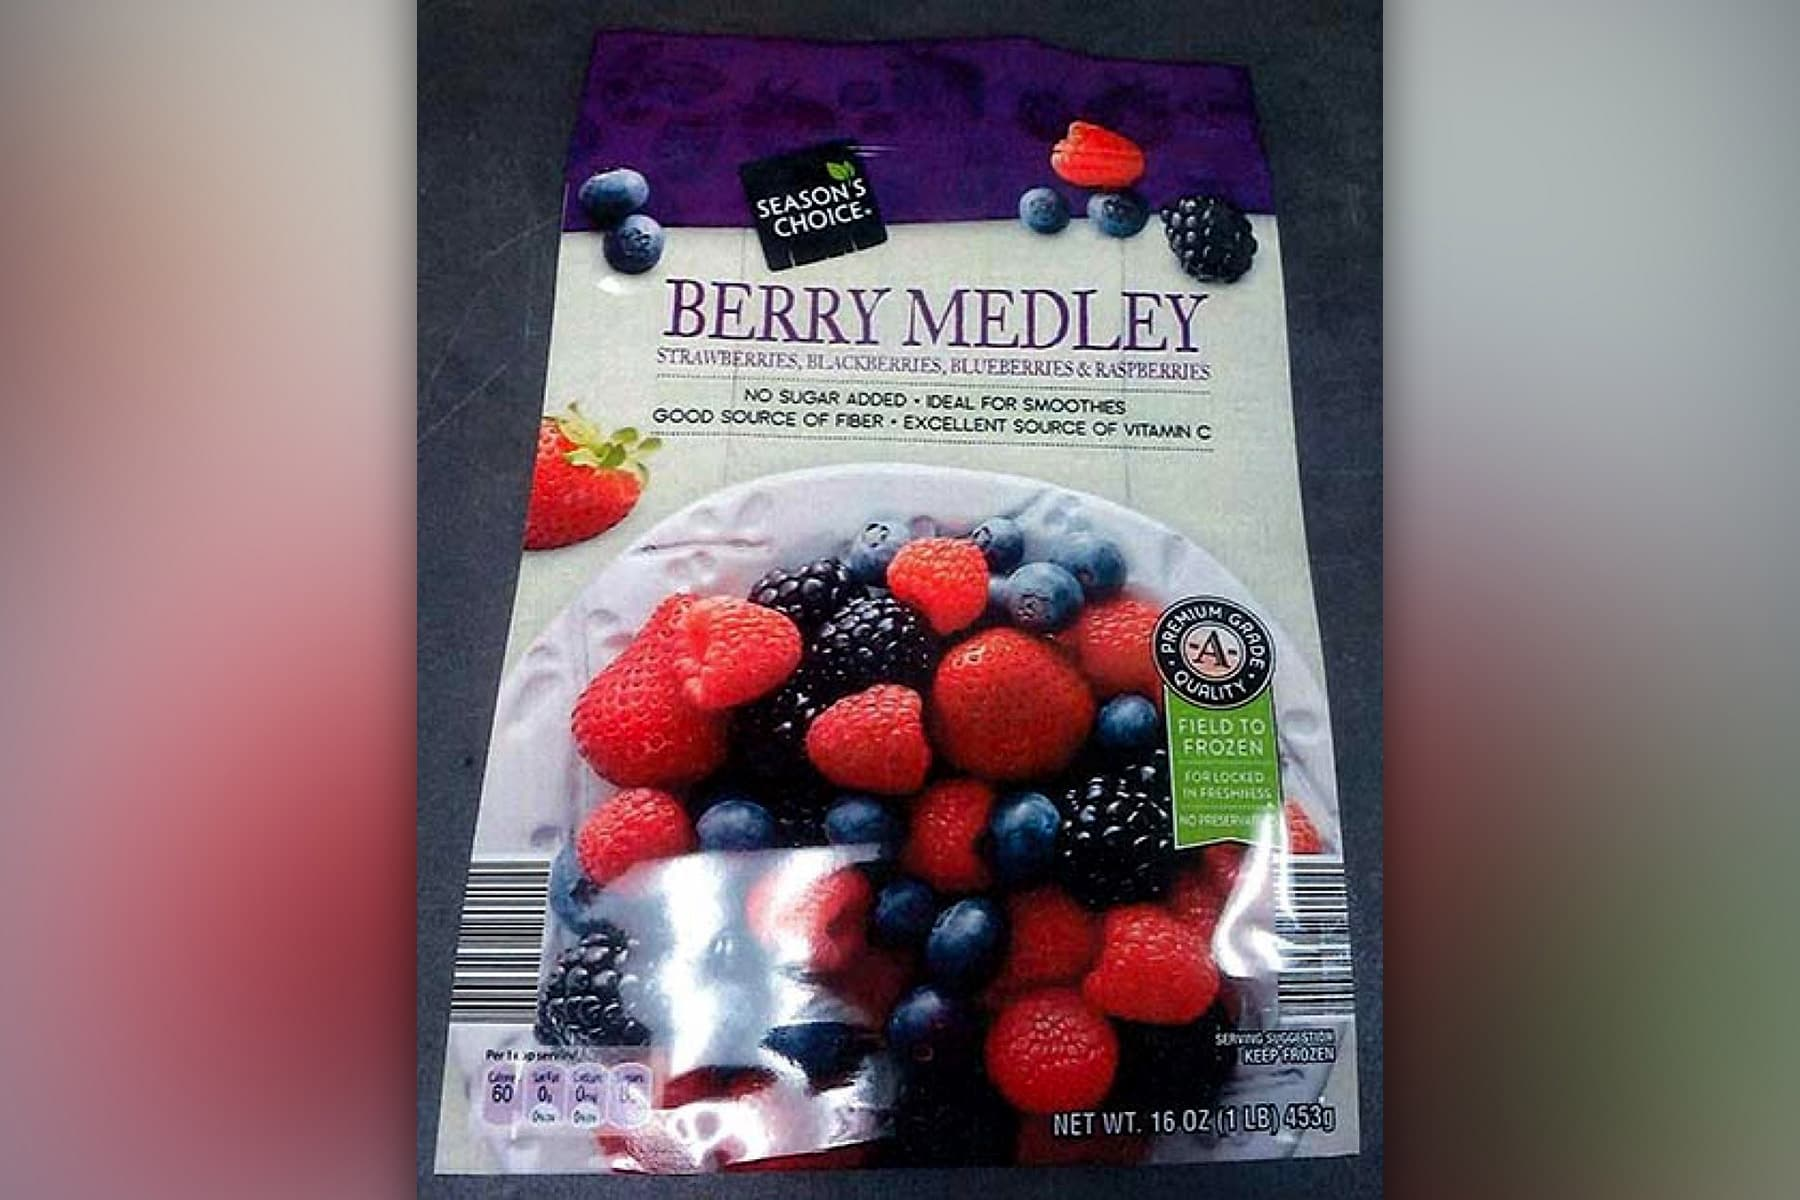 Recall: Frozen Berries Sold at Aldi and Raley's